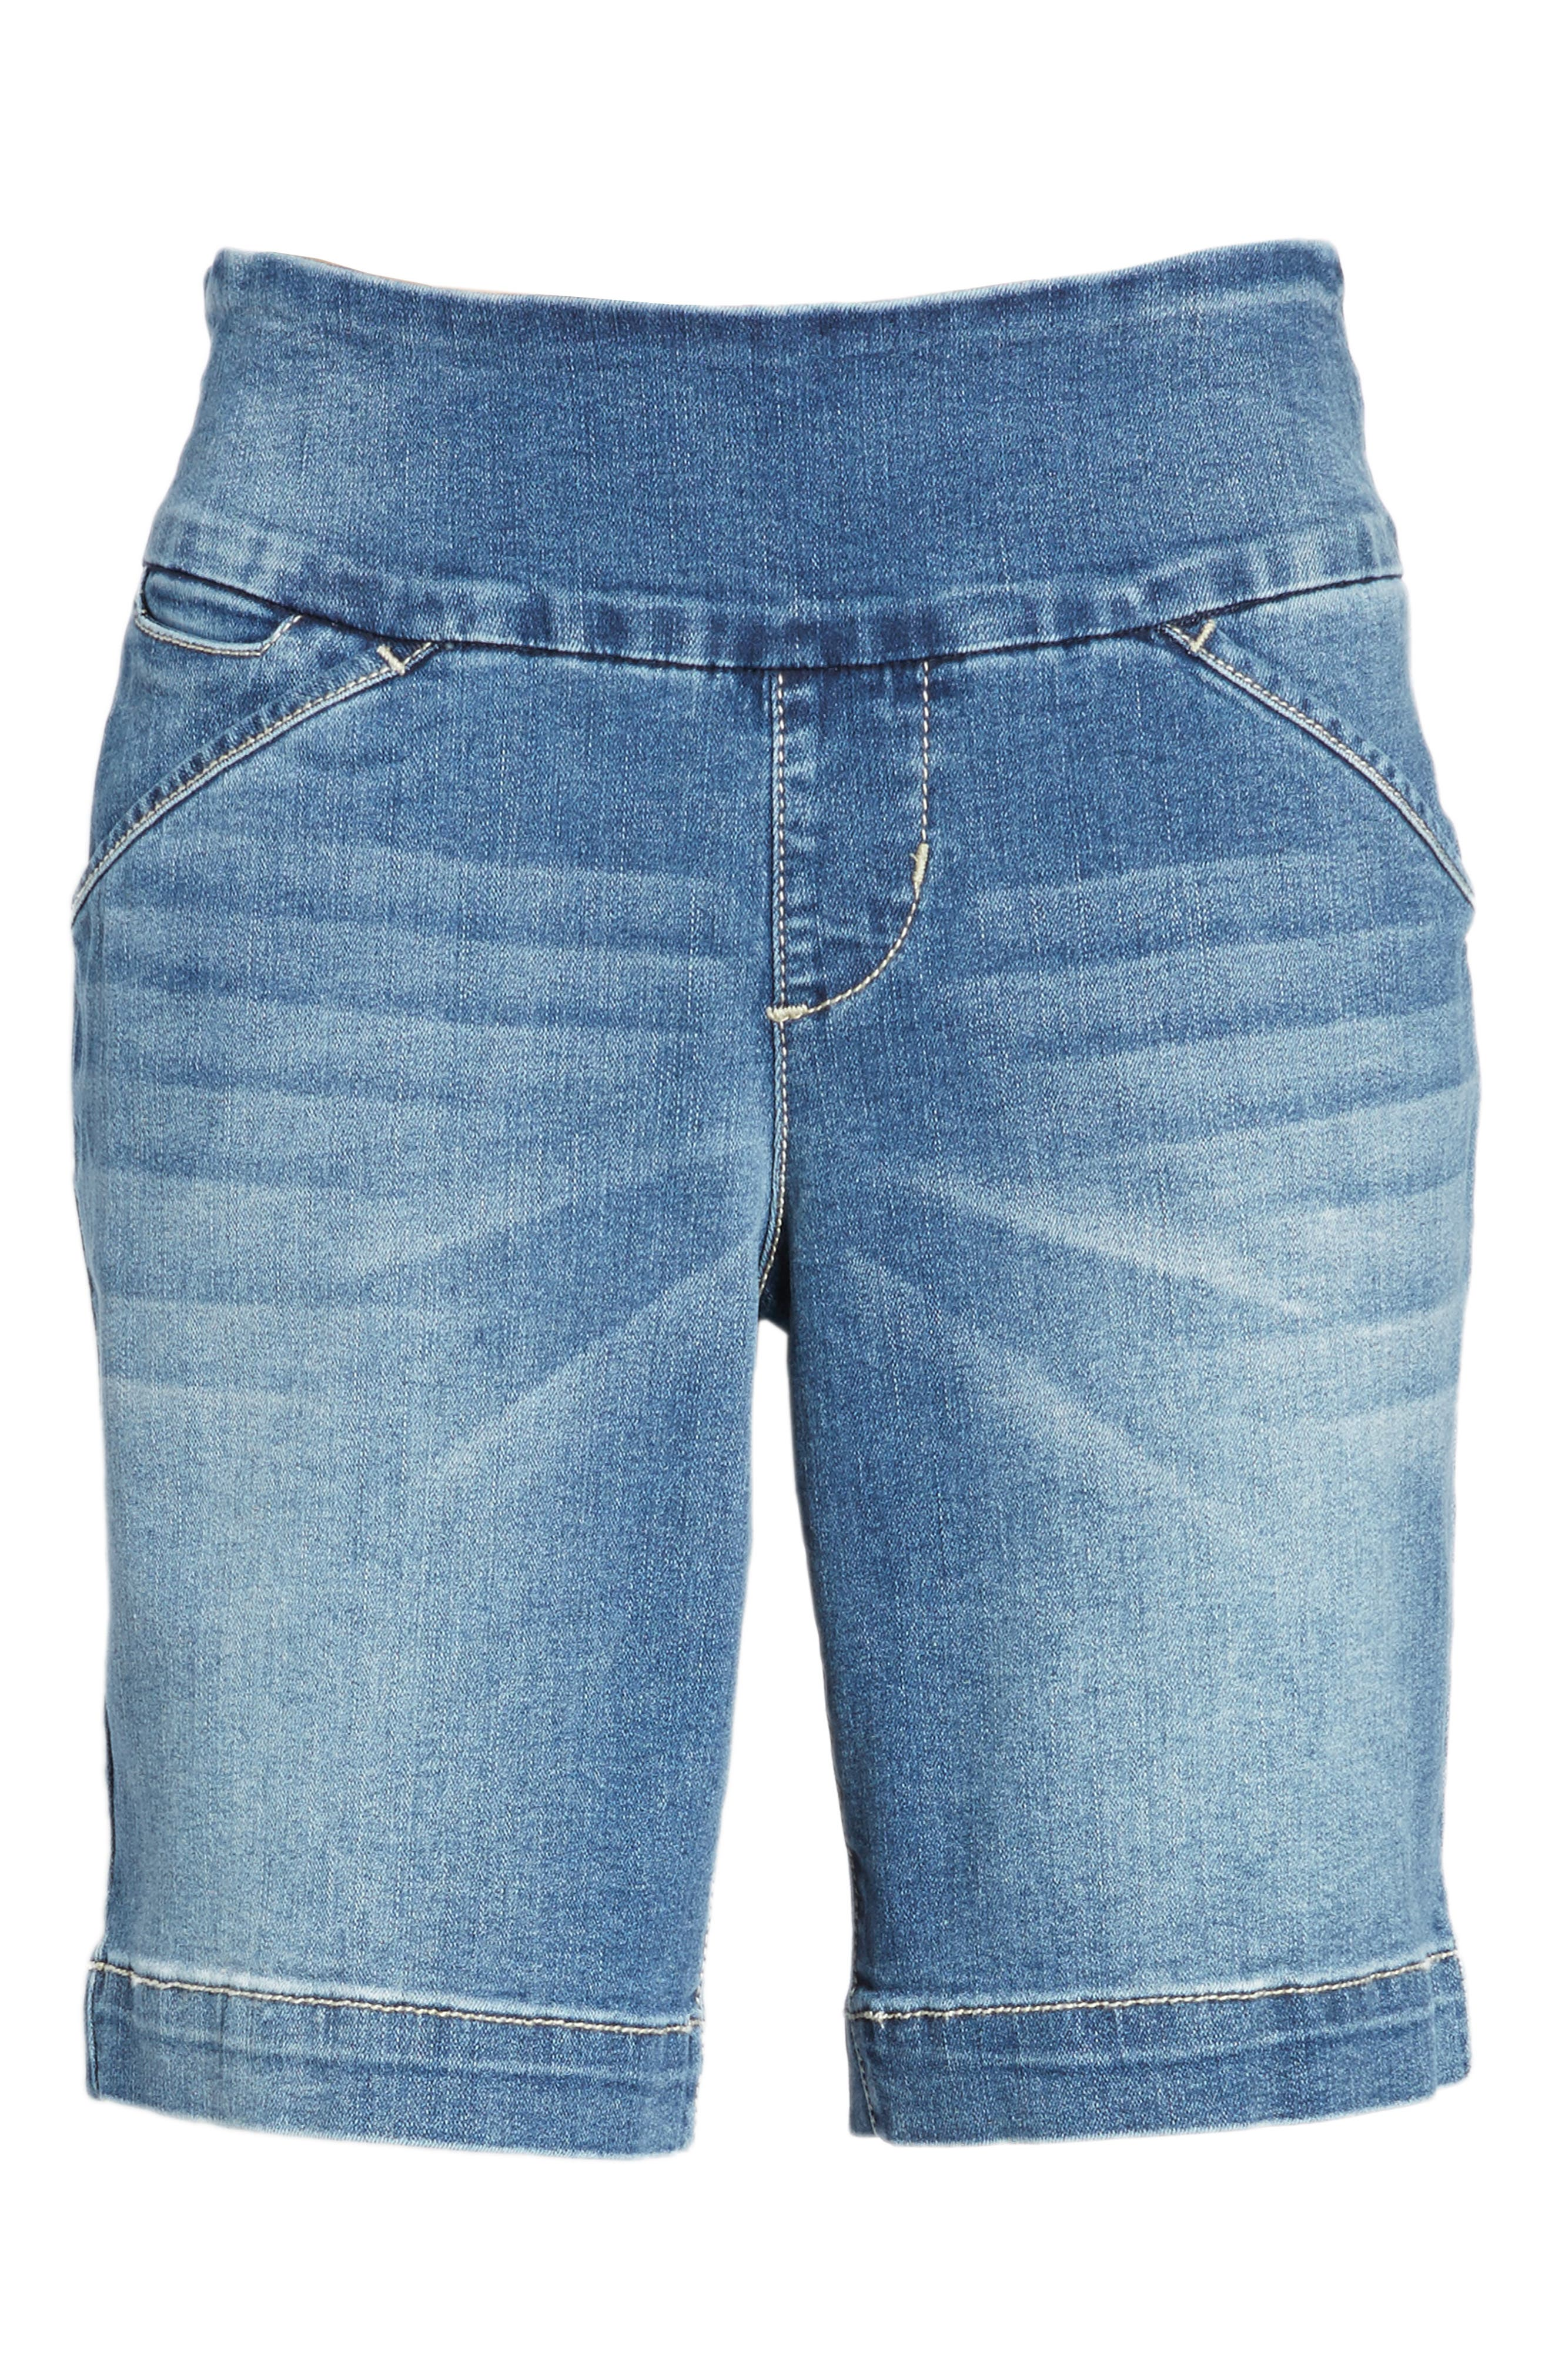 Ainsley Pull-On Stretch Denim Shorts,                             Alternate thumbnail 7, color,                             420